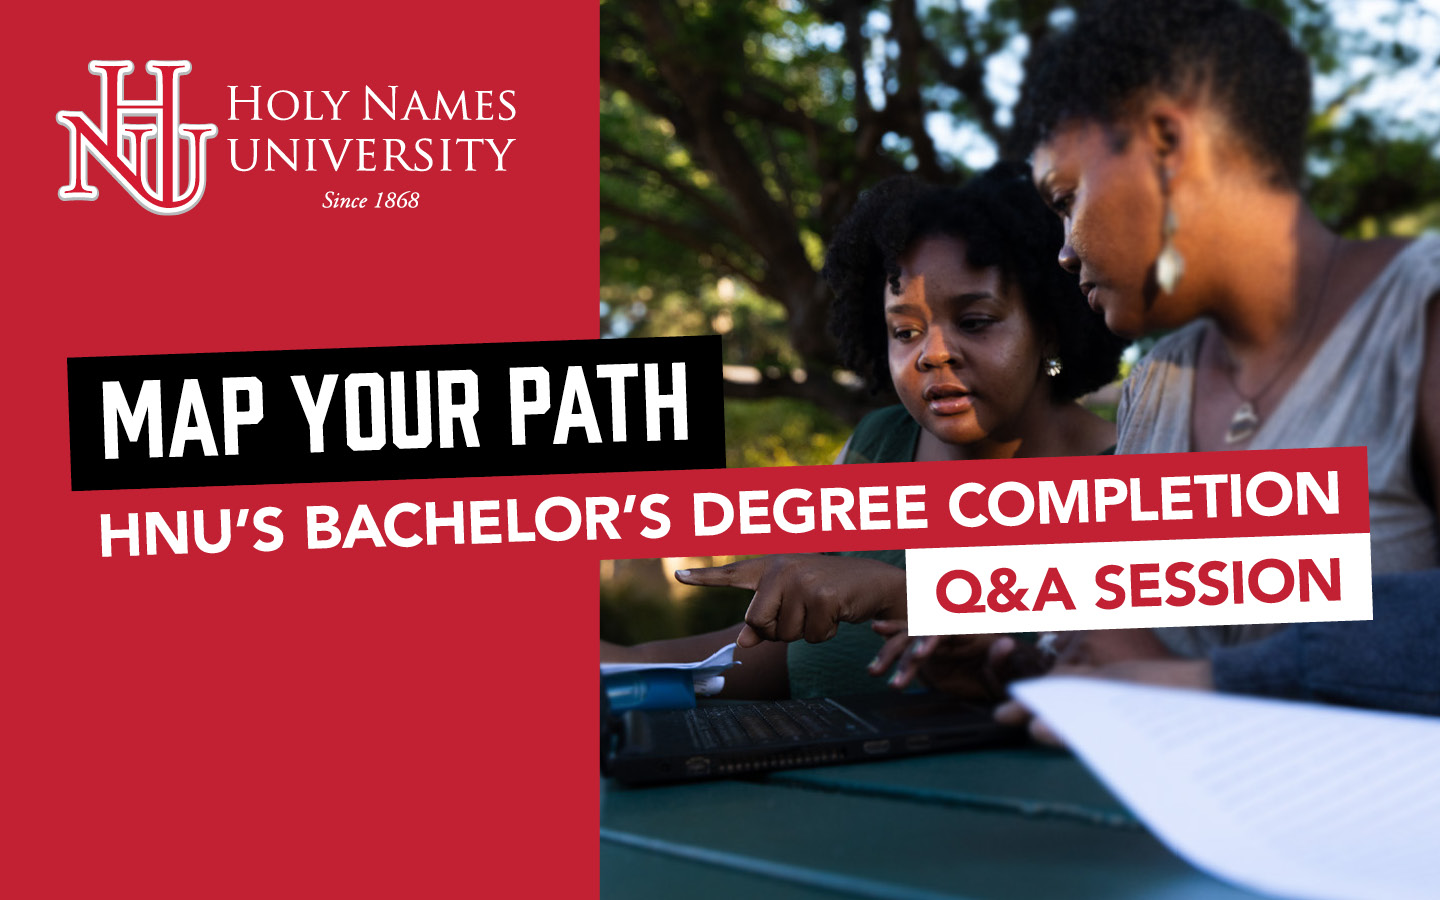 HNU Bachelor's Degree completion q&a session